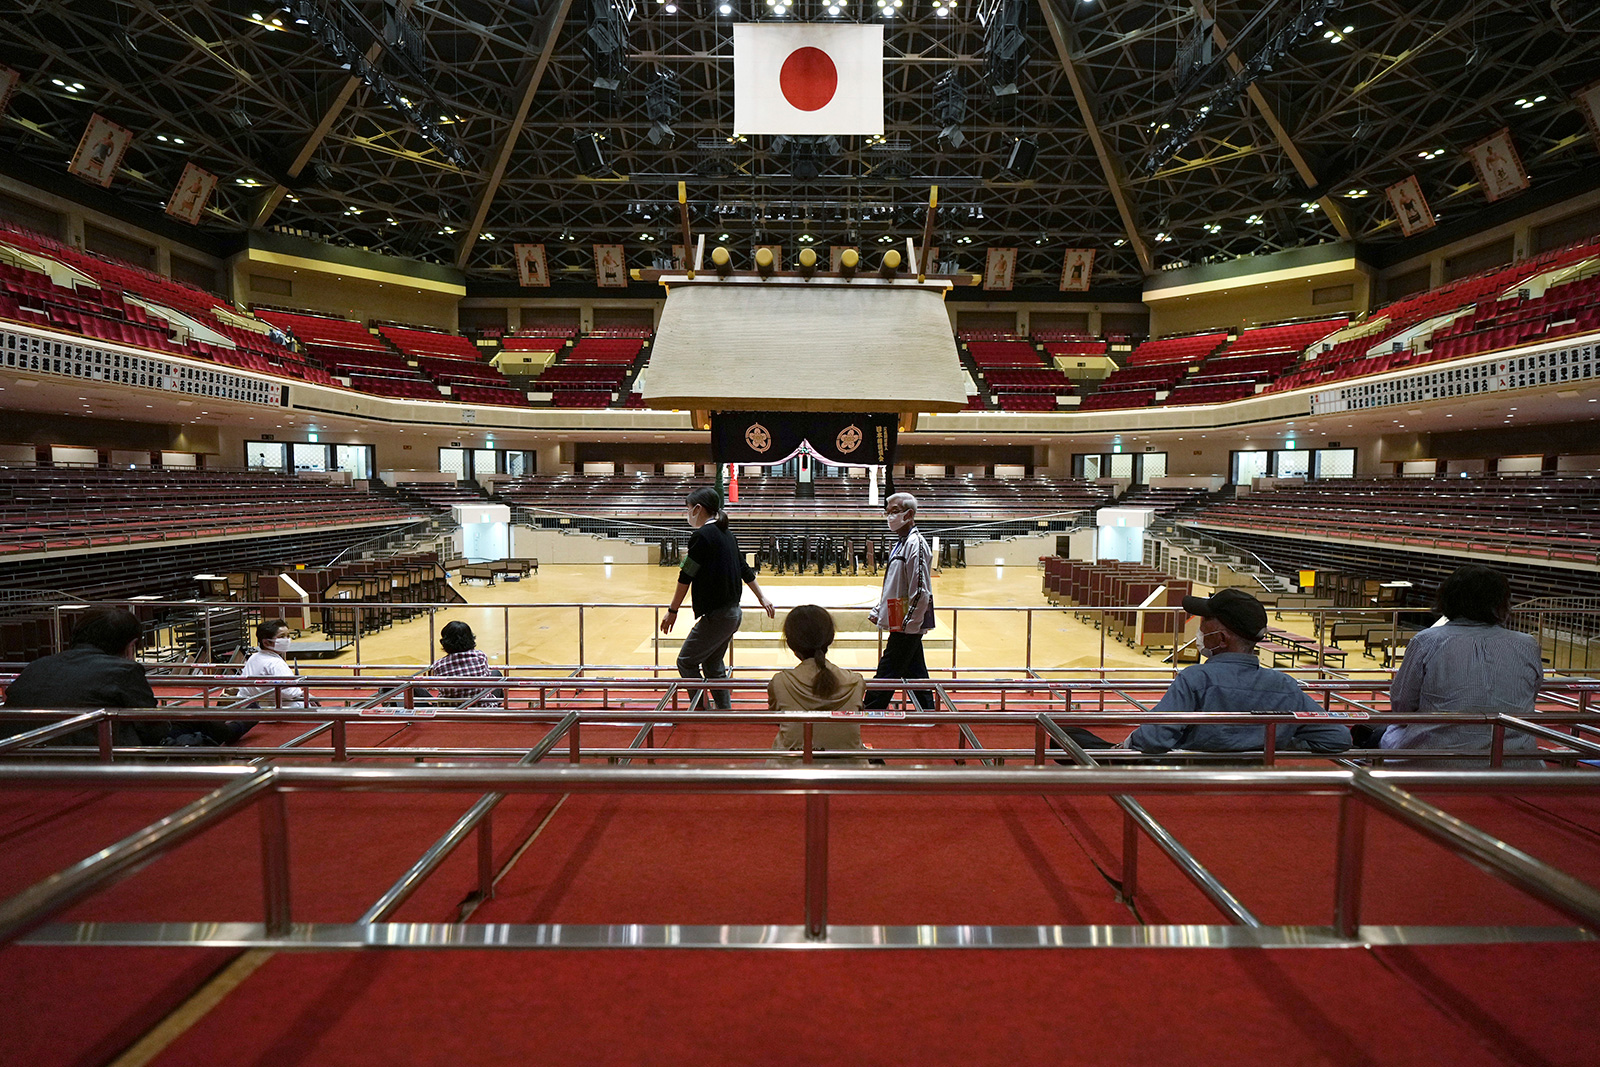 Elderly residents of Sumida Ward rest at box seats after receiving their first dose of Pfizer's Covid-19 vaccine at the Ryogoku Kokugikan sporting arena, in Tokyo on Monday, May 24.